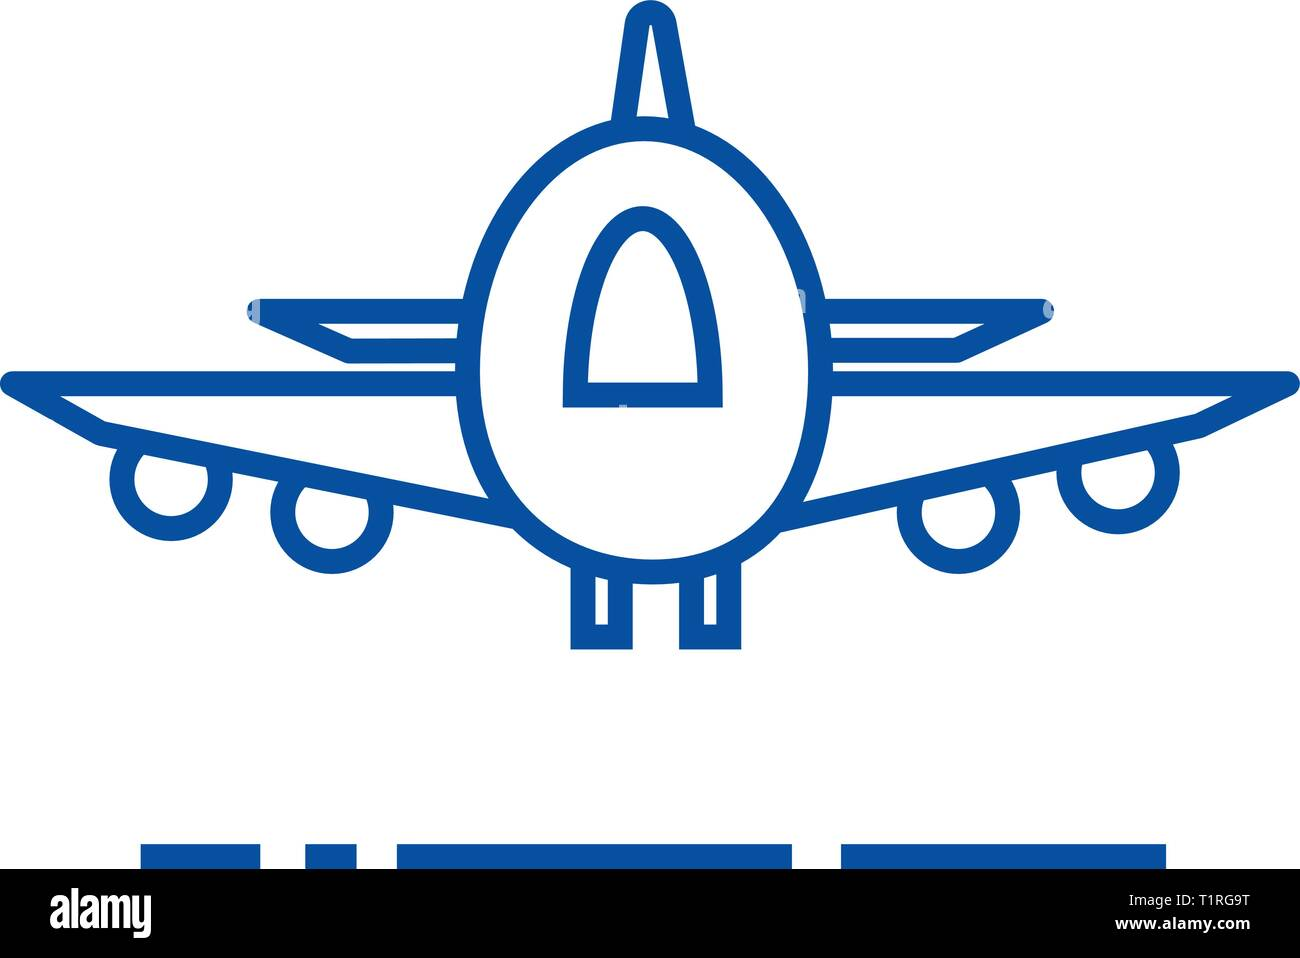 Plane,airoport,fast delivery line icon concept. Plane,airoport,fast delivery flat  vector symbol, sign, outline illustration. - Stock Vector